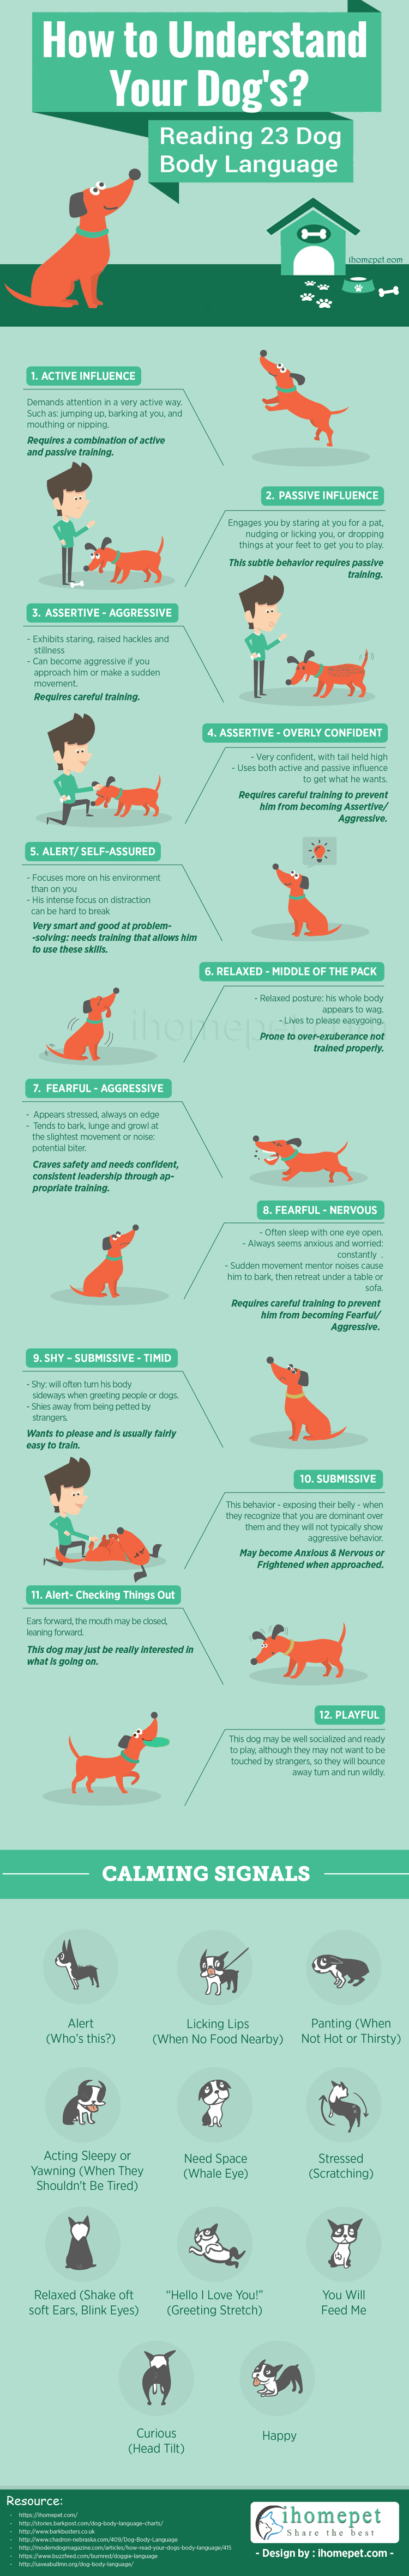 How to Understand Your Dog?